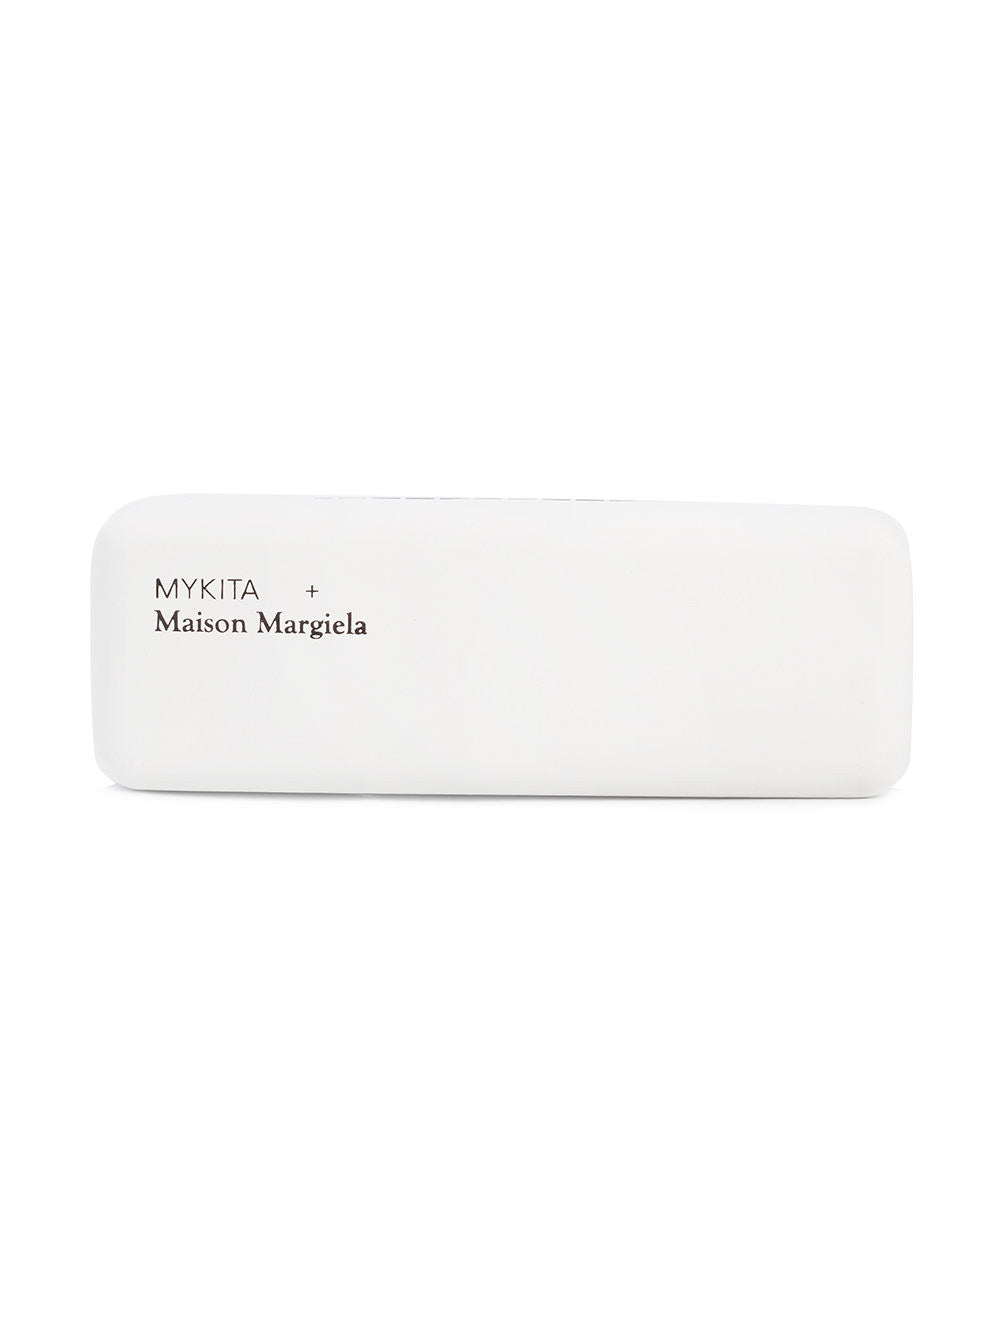 Mykita Margiela Raw Ruby Sunglasses Case